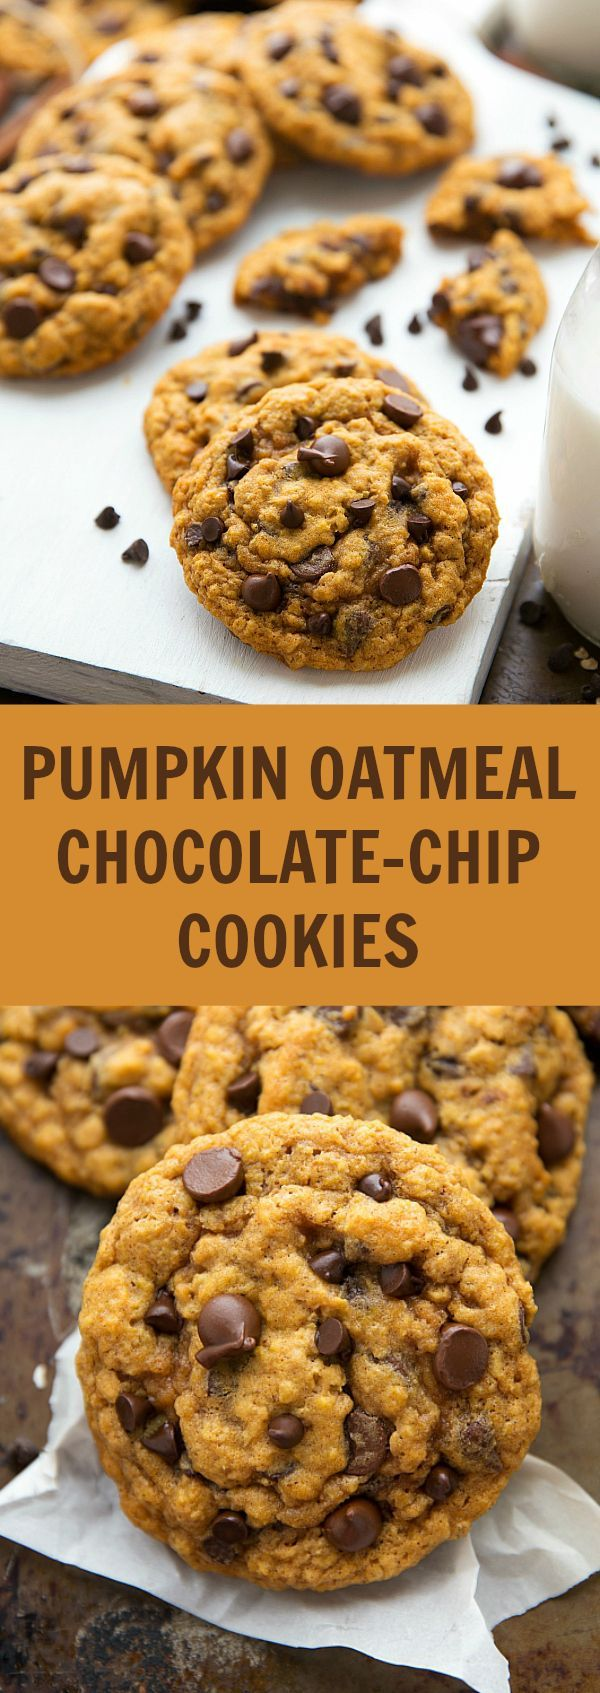 Pumpkin Oatmeal Chocolate-Chip Cookies (Non-Cakey Version)